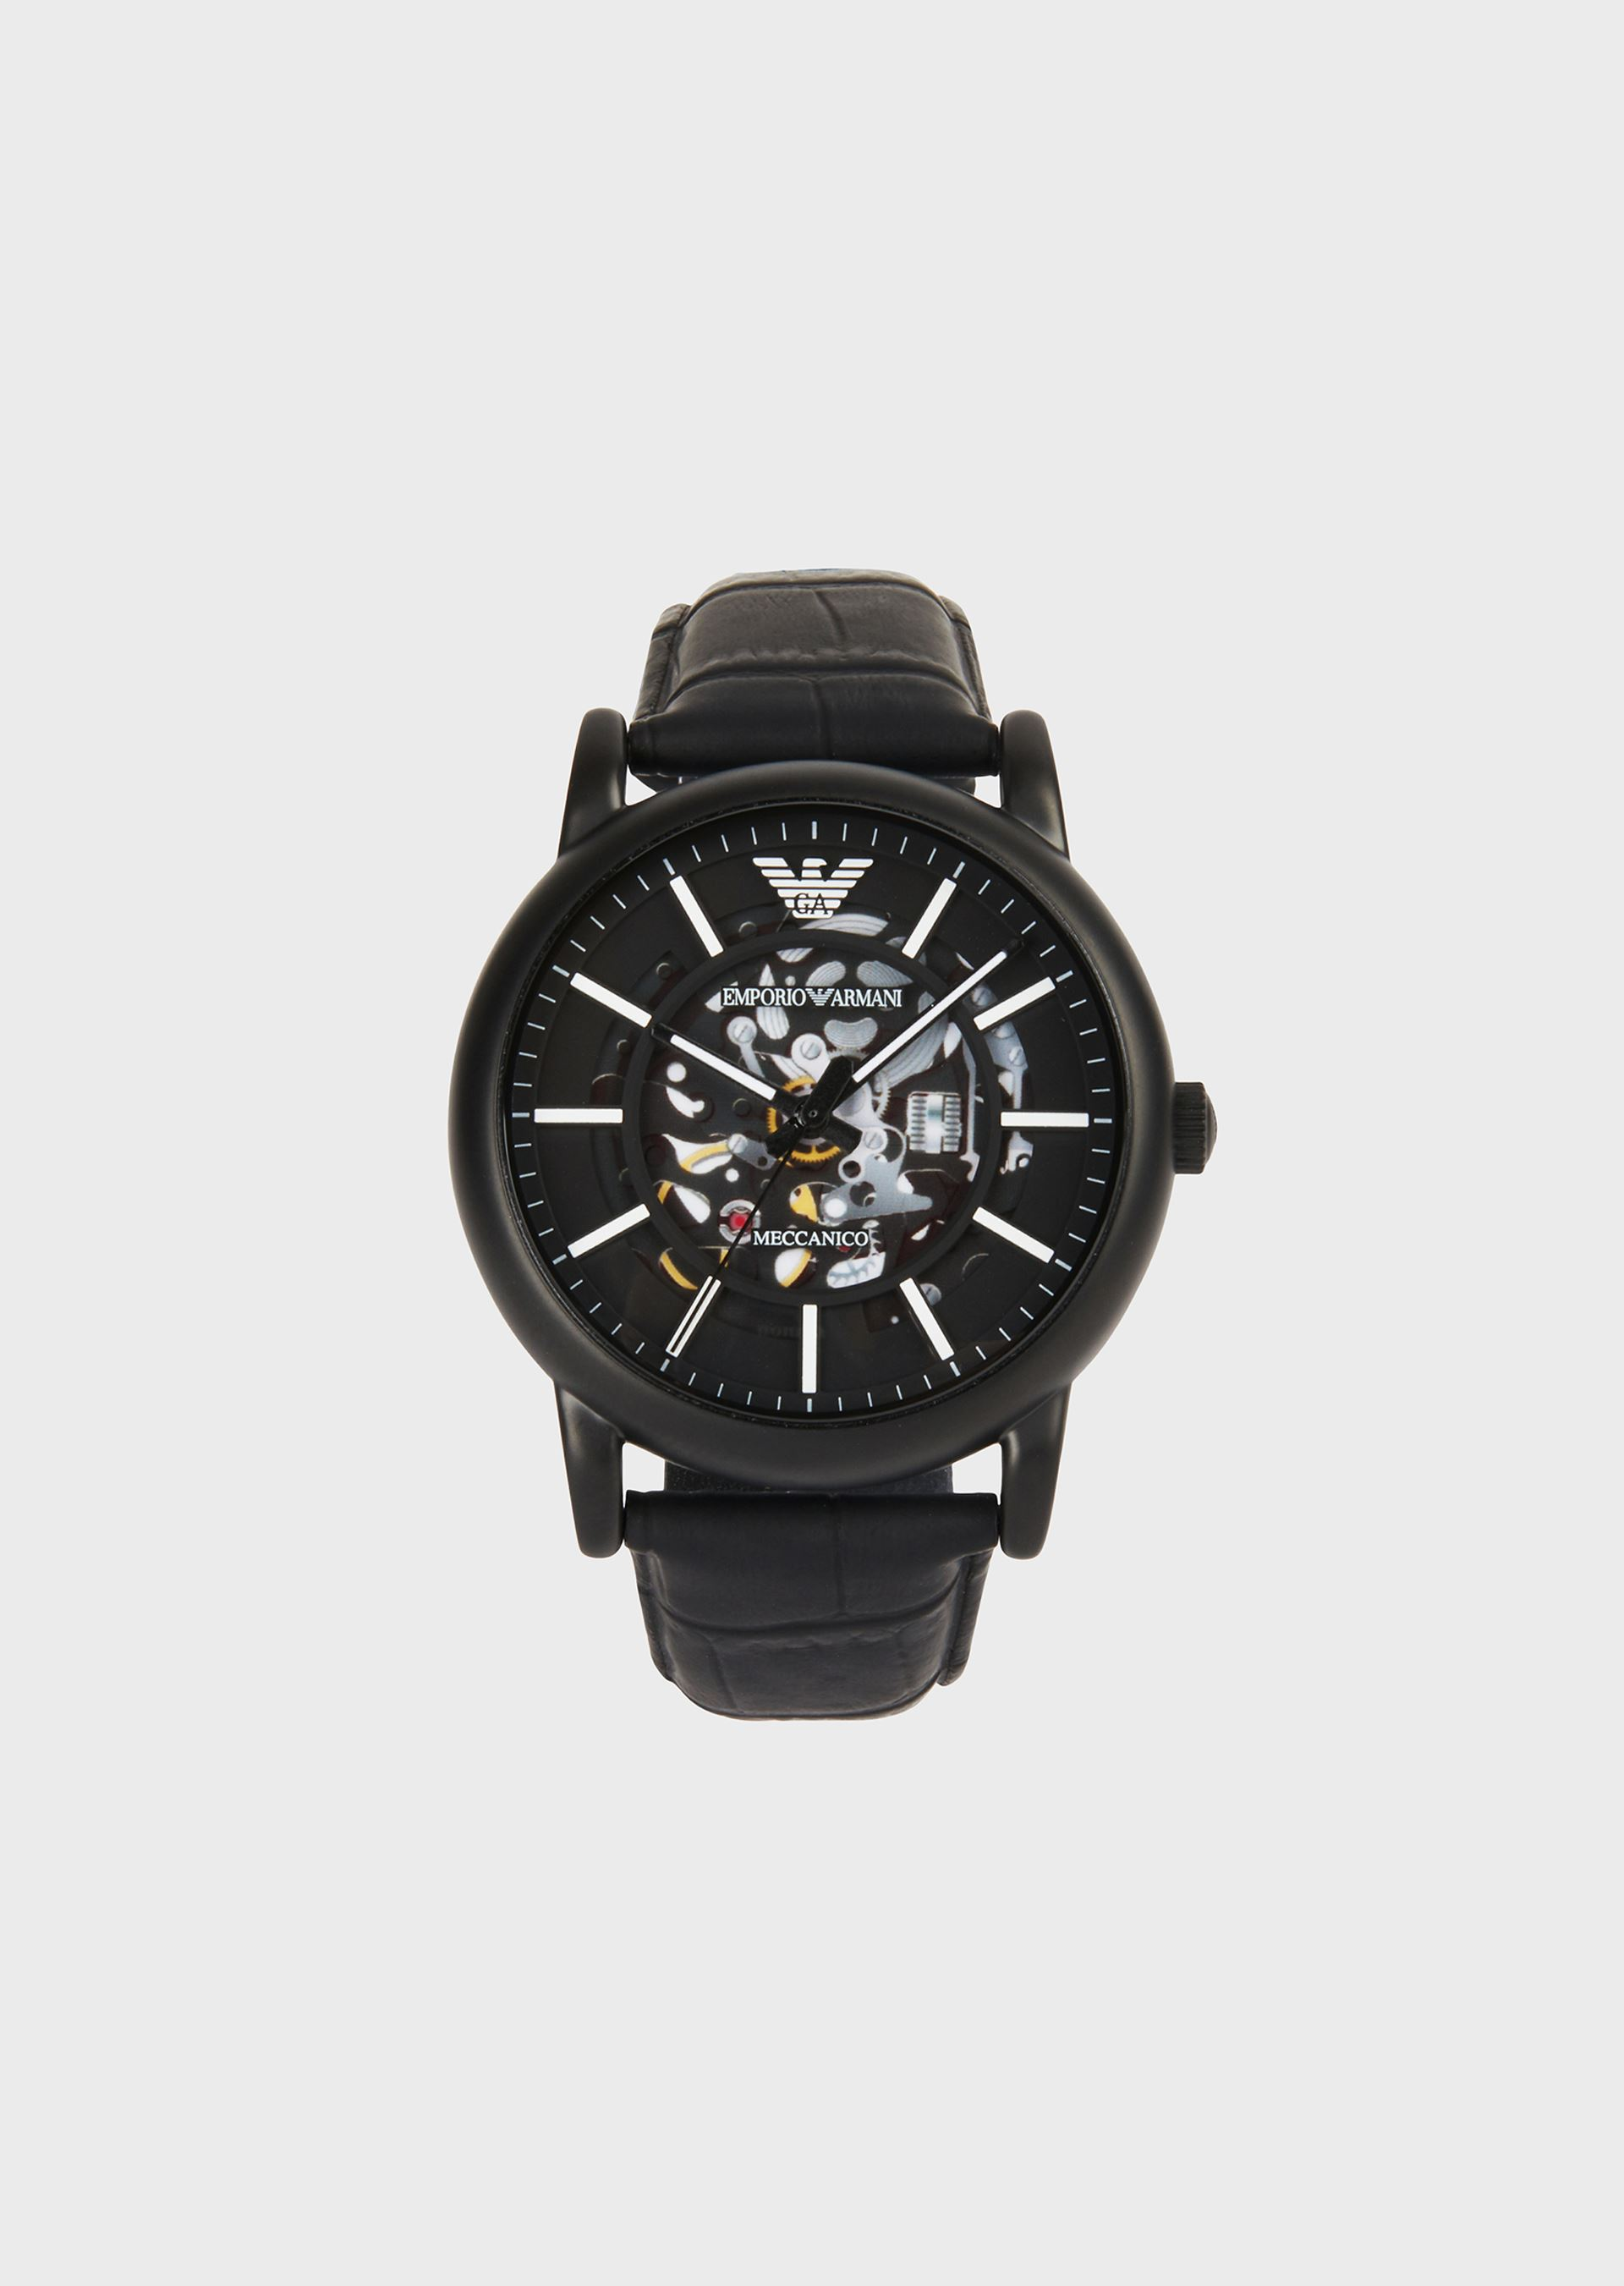 EMPORIO ARMANI Men's watch with visible gears and leather strap